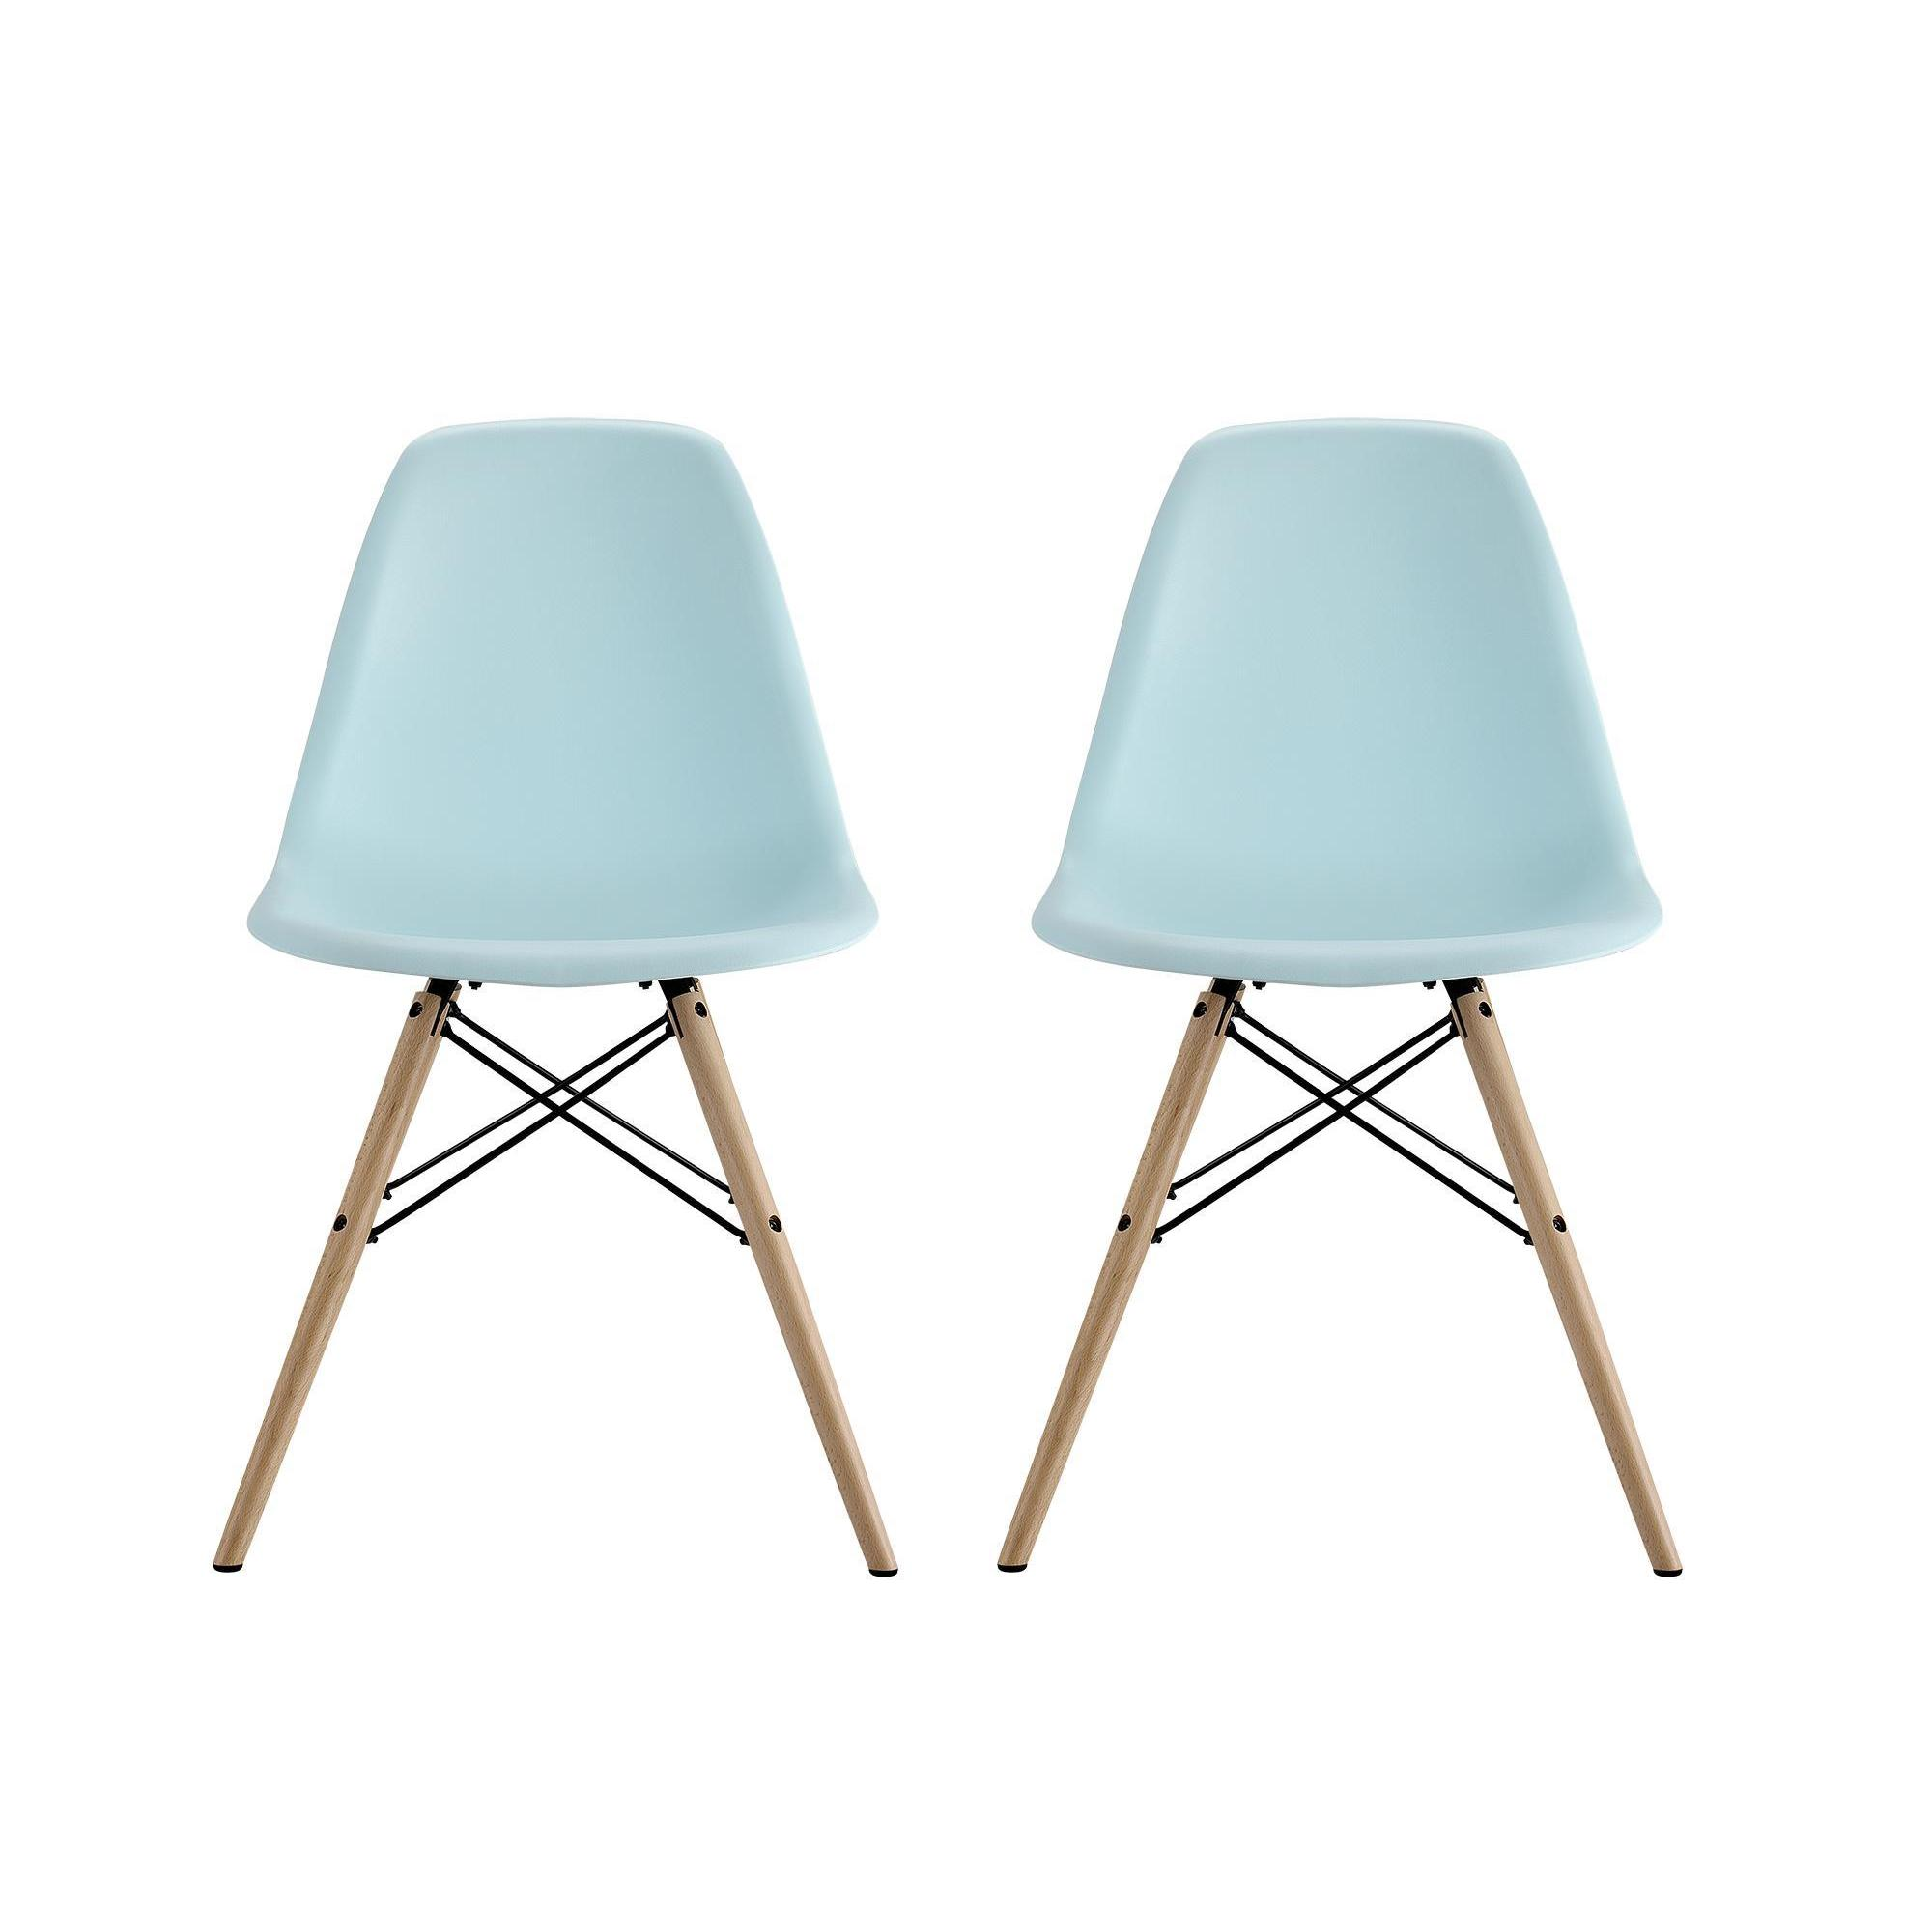 Etonnant Shop DHP Mid Century Modern Molded Blue Chair With Wood Leg (Set Of 2)    Free Shipping Today   Overstock   10527439